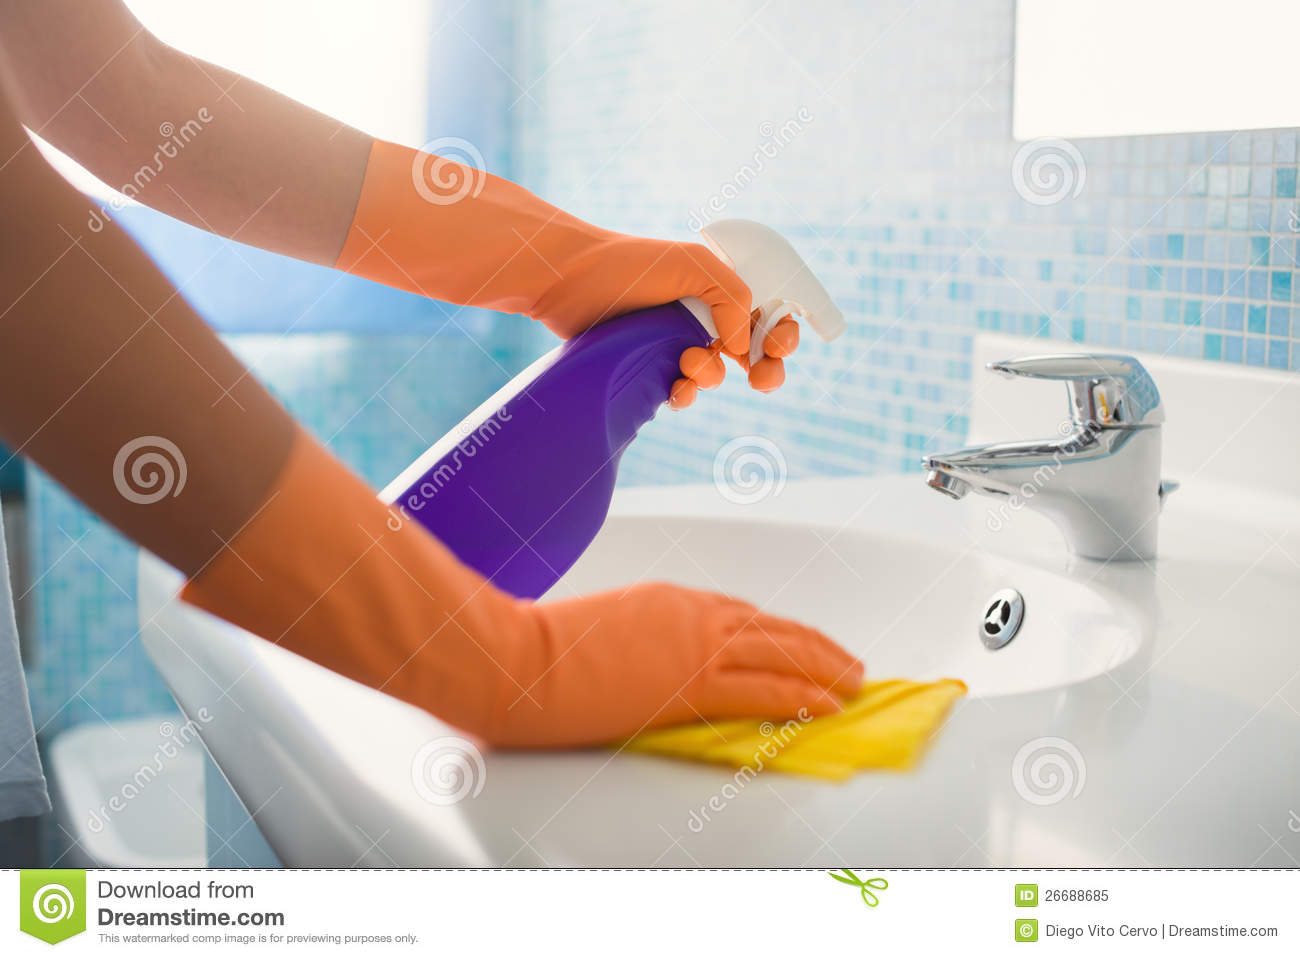 Woman clipart cleaning toilet Search Woman Cleaning Clean &